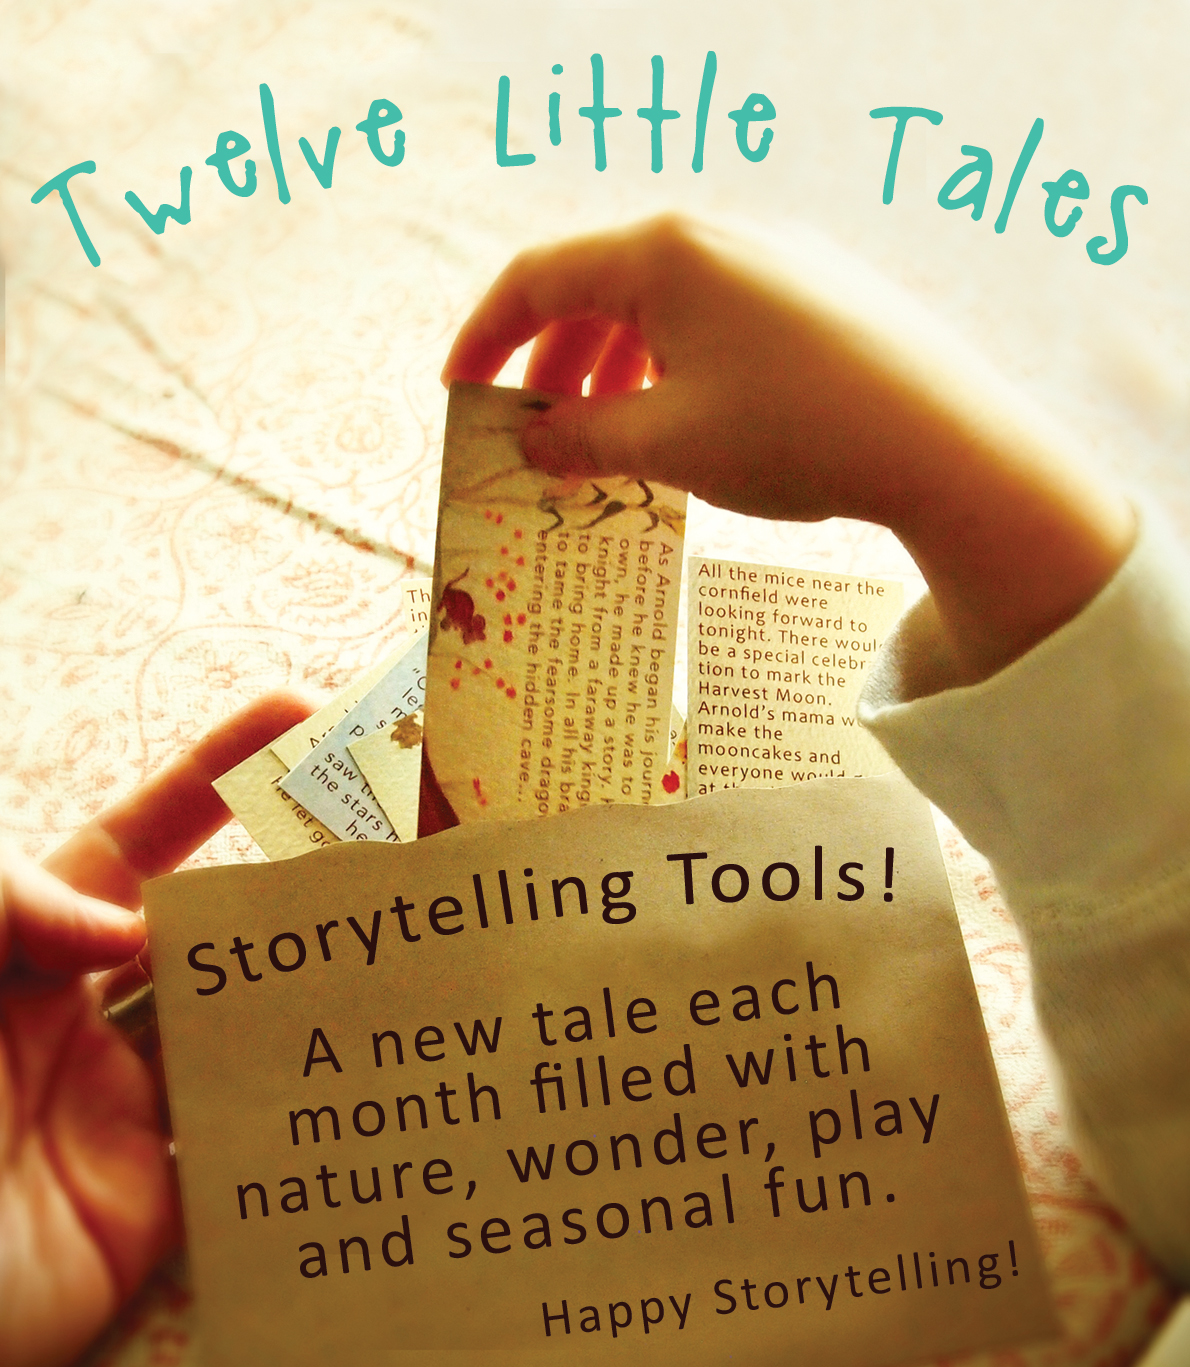 Twelve Little Tales